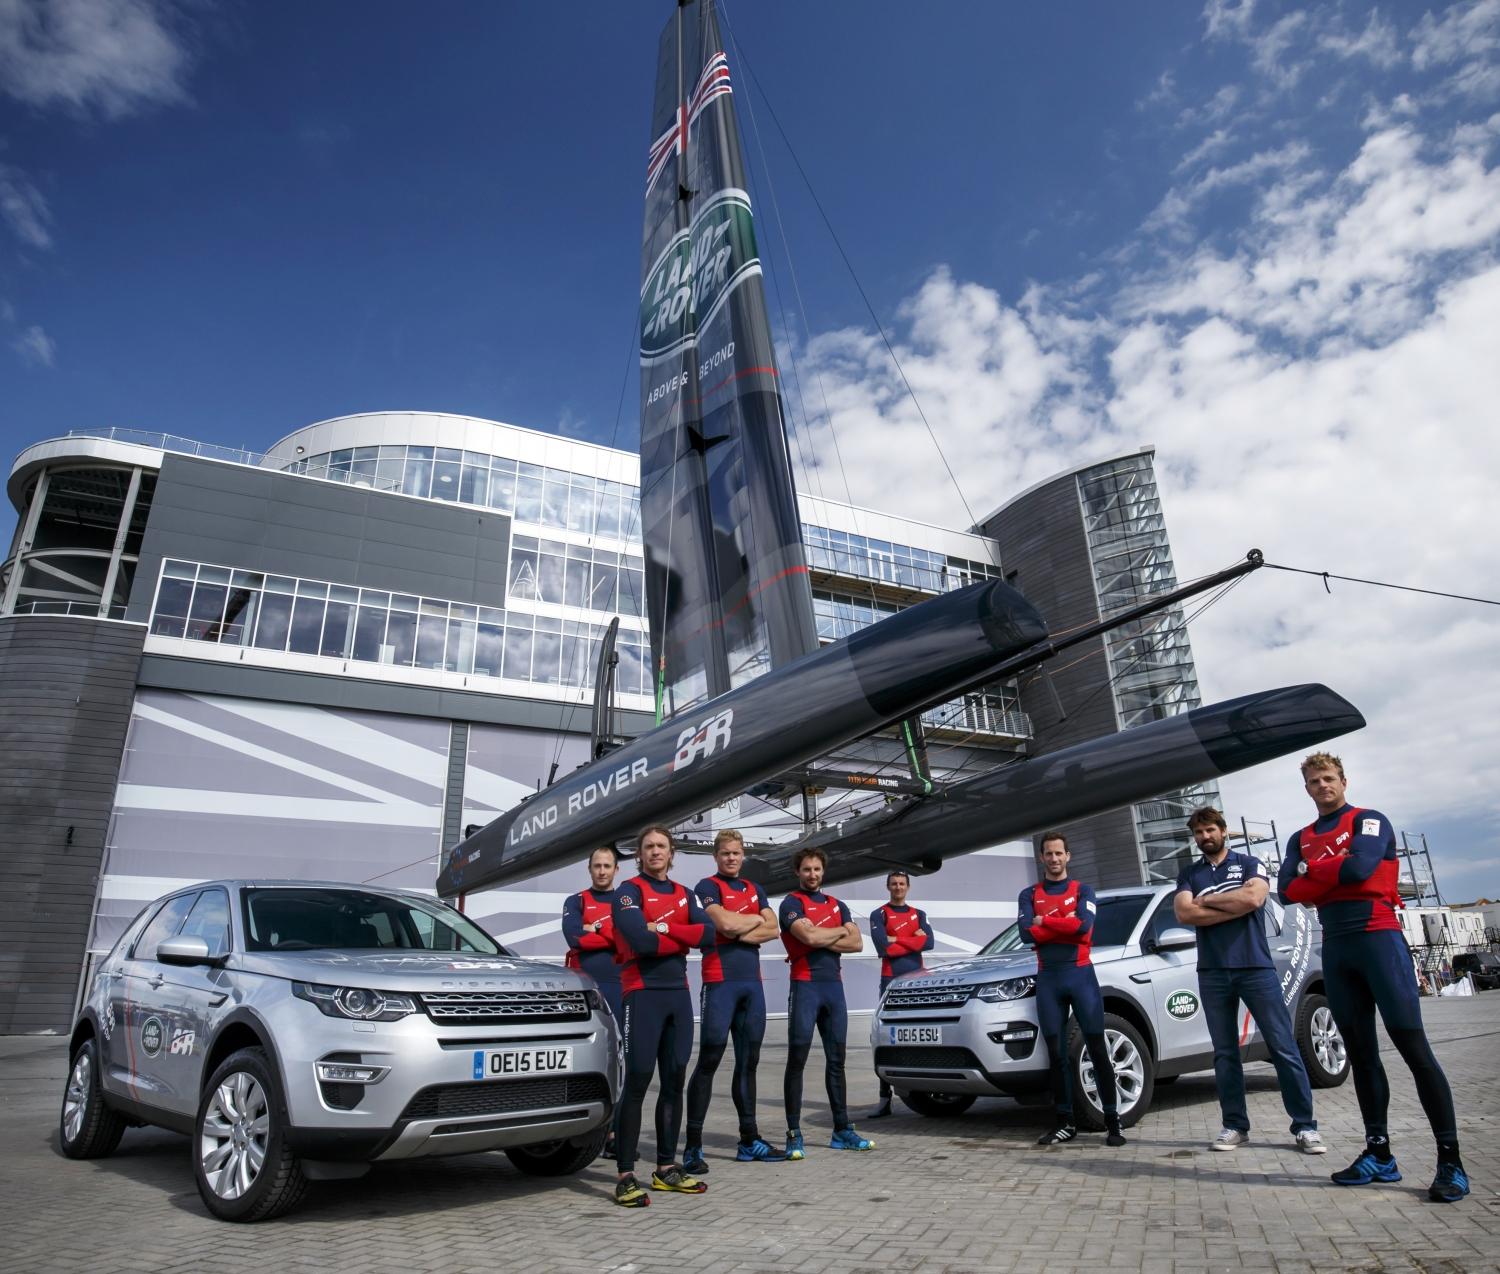 Land Rover Becomes Title And Exclusive Innovation Partner With Ben Ainslie Racing For America's Cup Bid